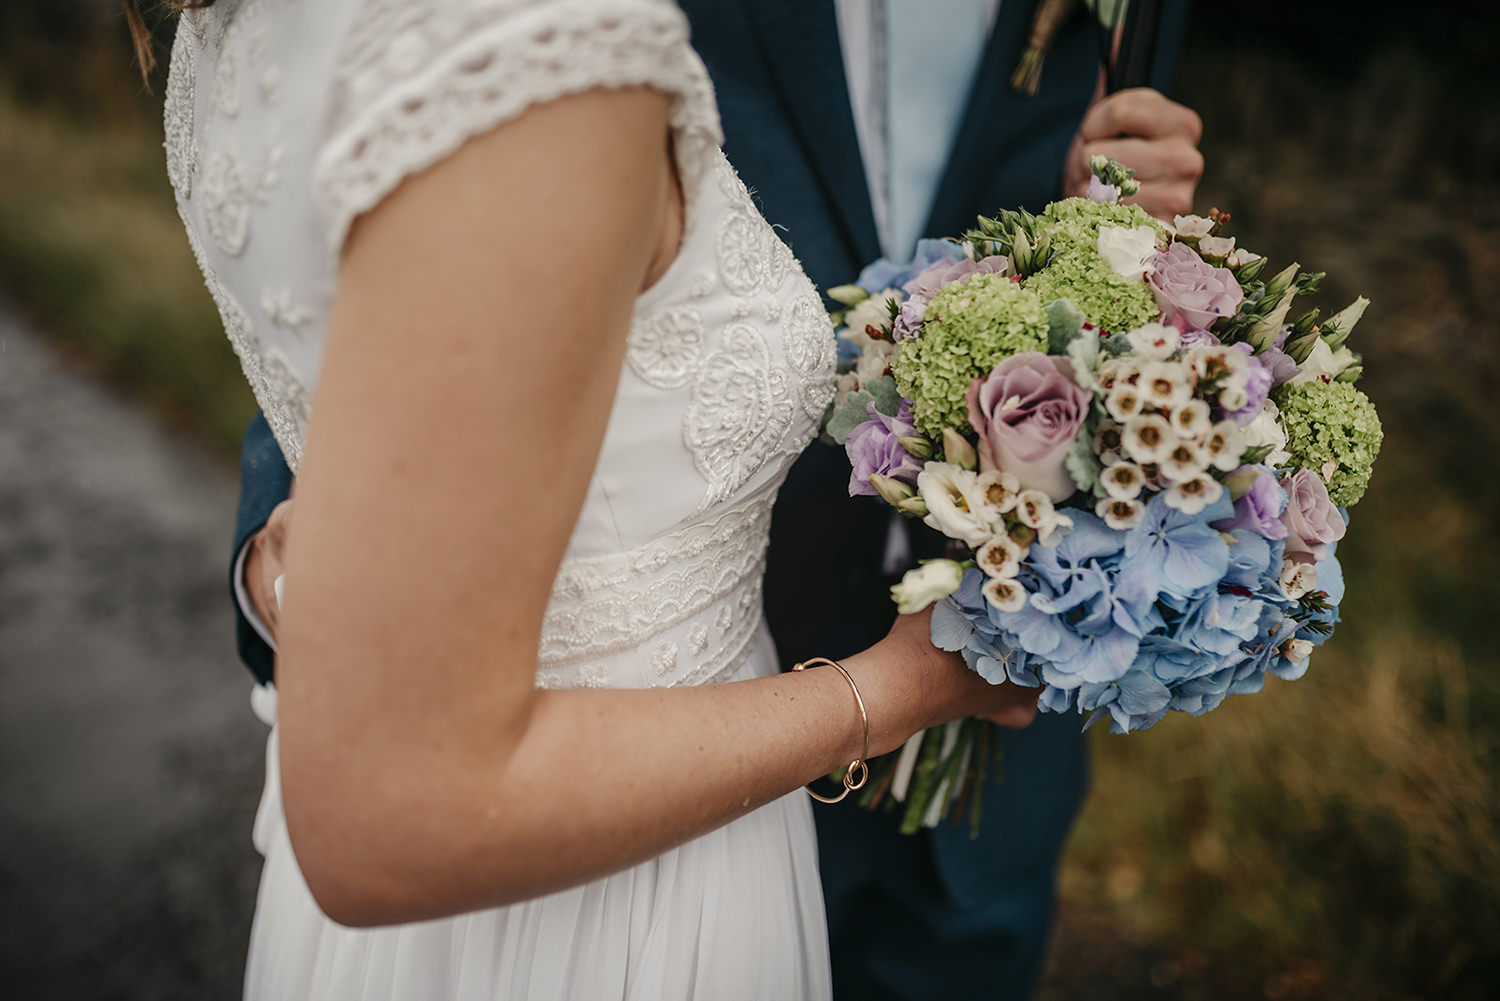 Bride's flower bouquet